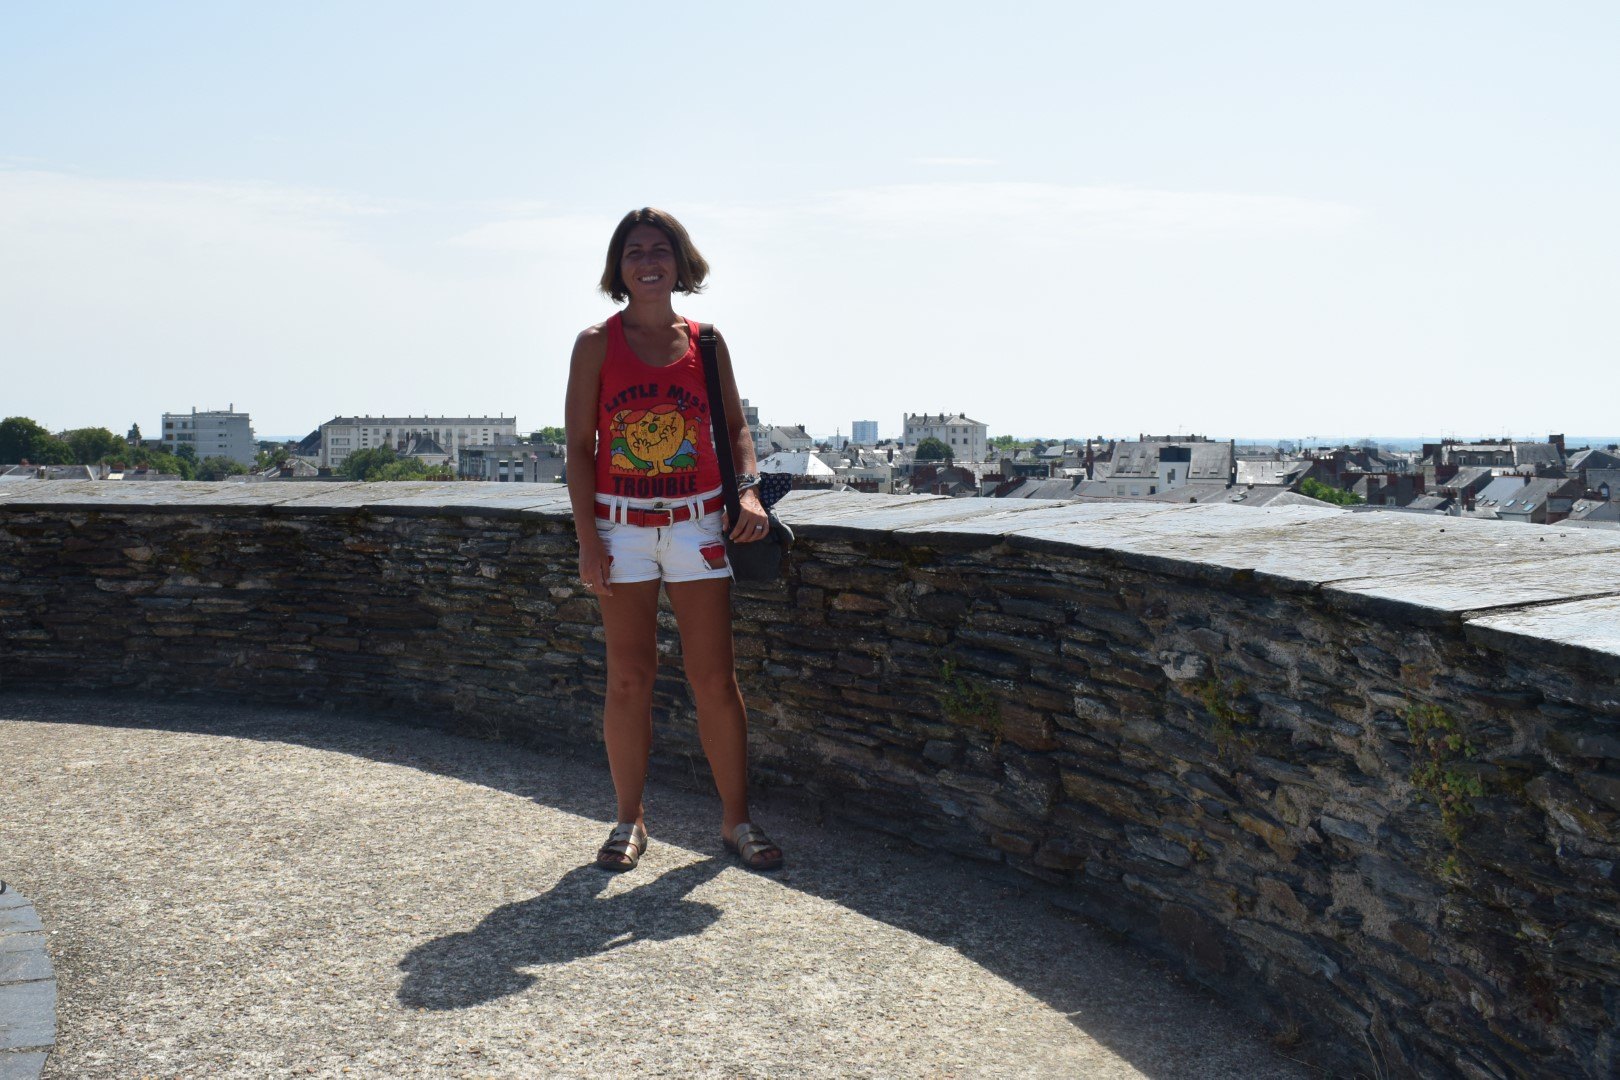 On the castle's ramparts